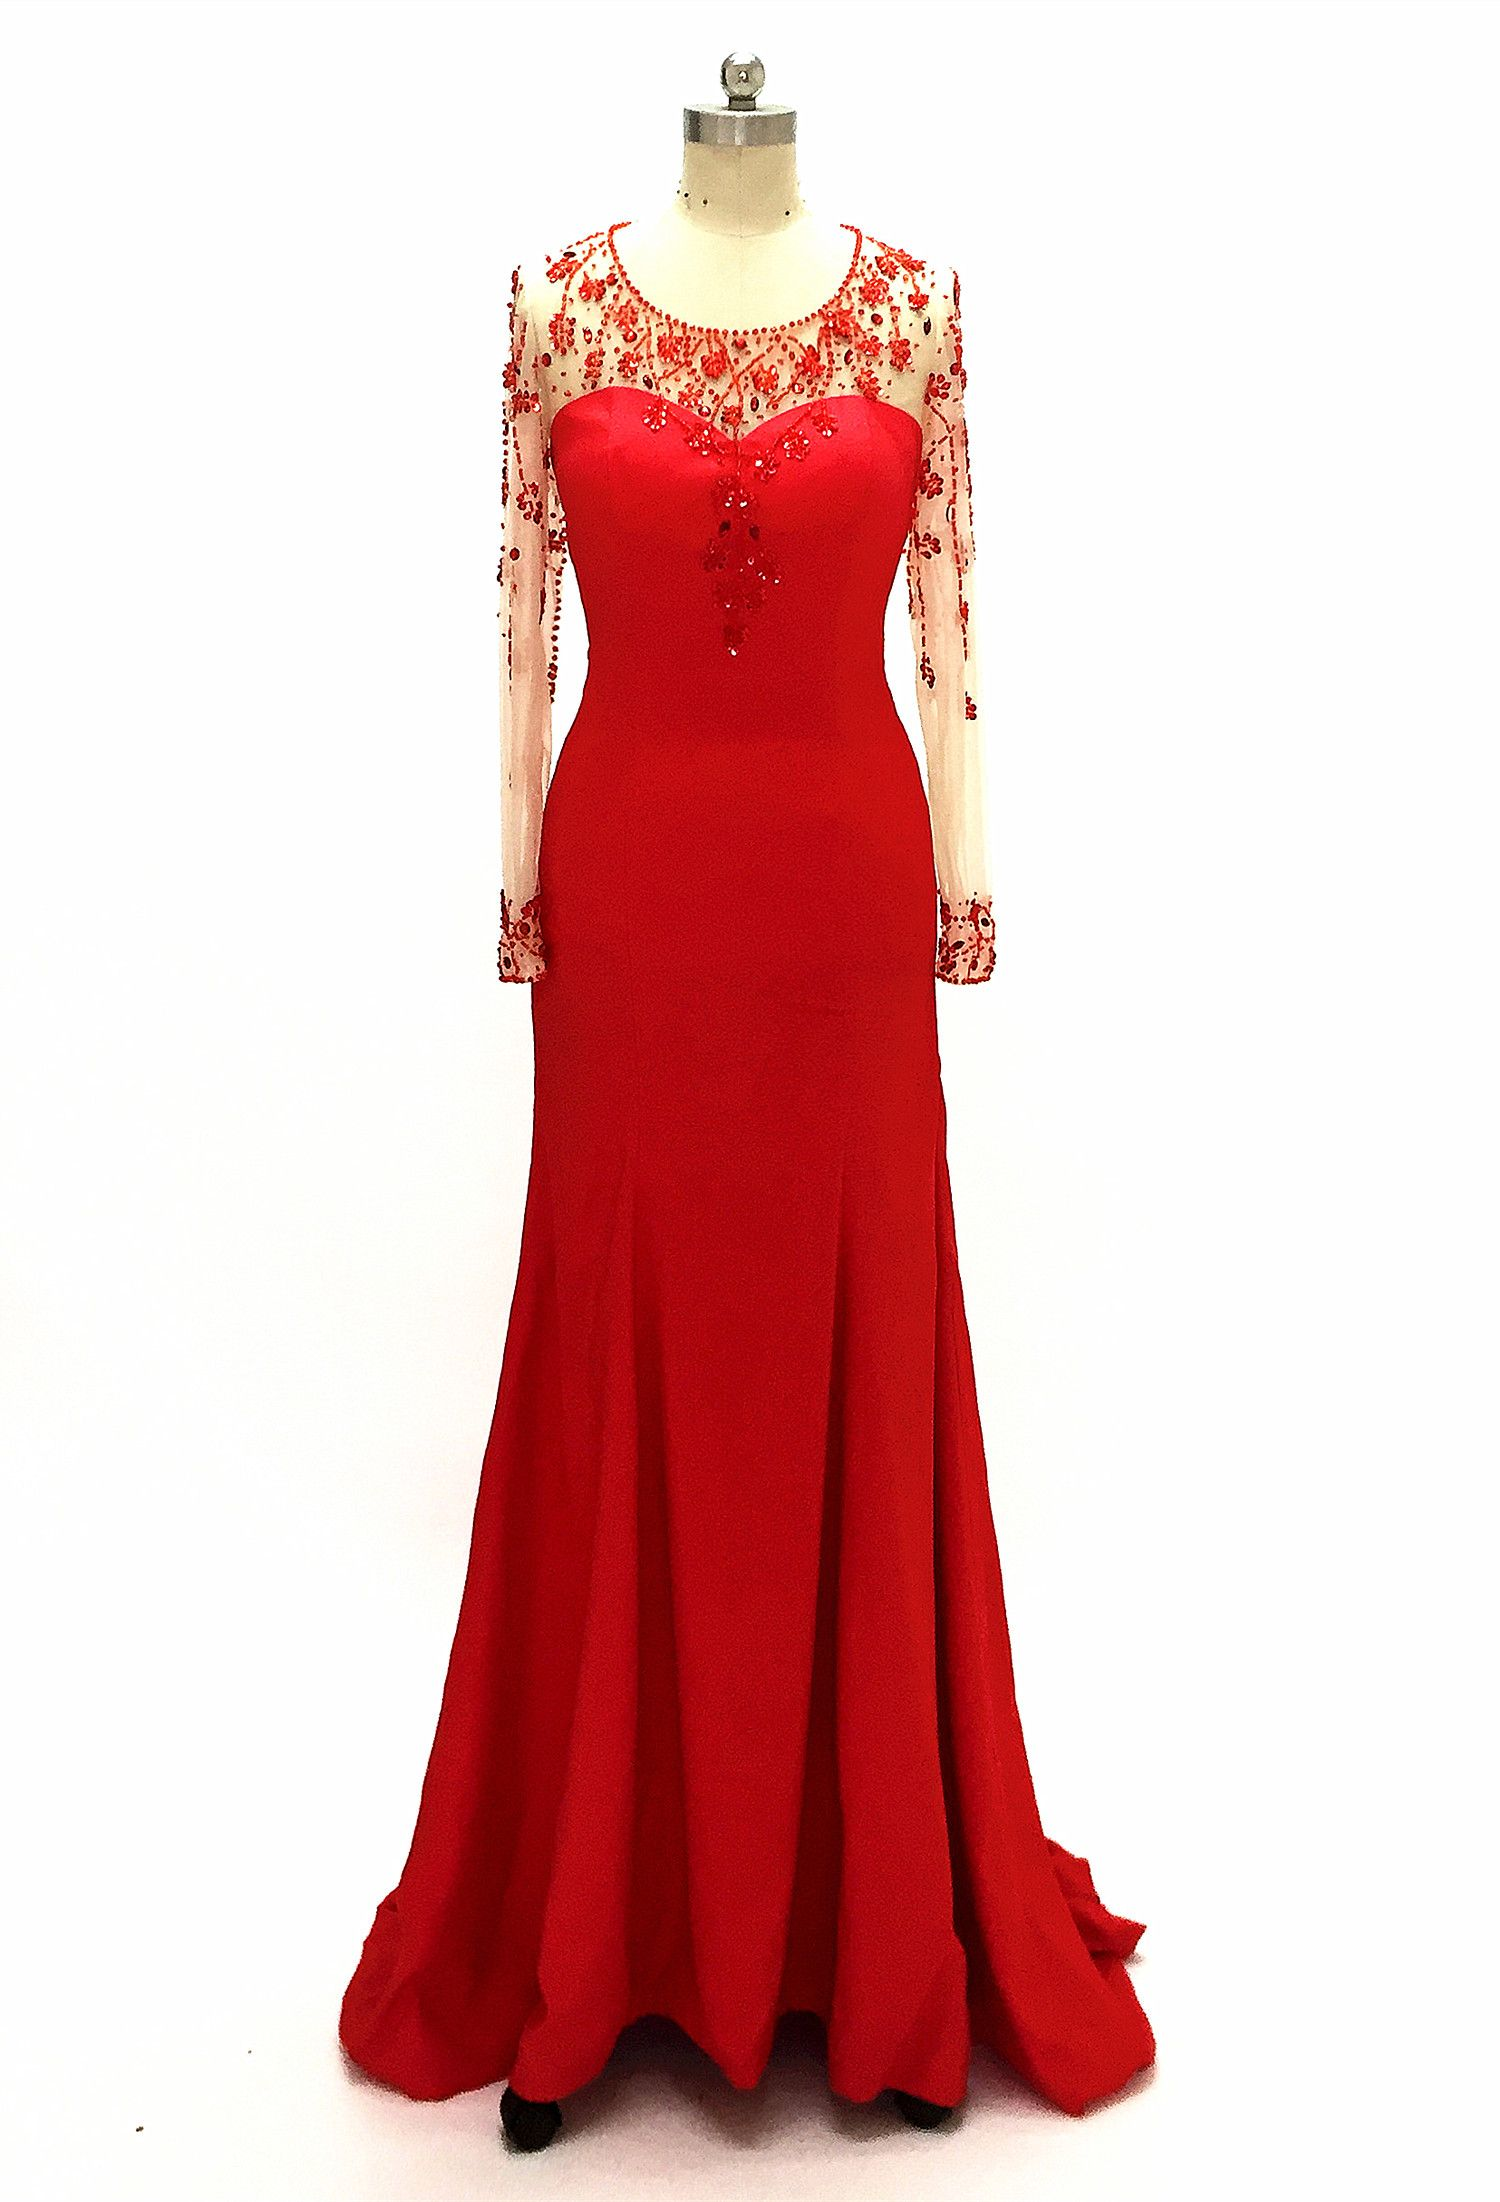 a01d88c2762 Red Prom Dresses 2019 Mermaid Evening Dress Long Sleeves Beaded O Neck Fashion  Formal Party Gowns  zhuetsydress wedding party dress for women s party gowns  ...